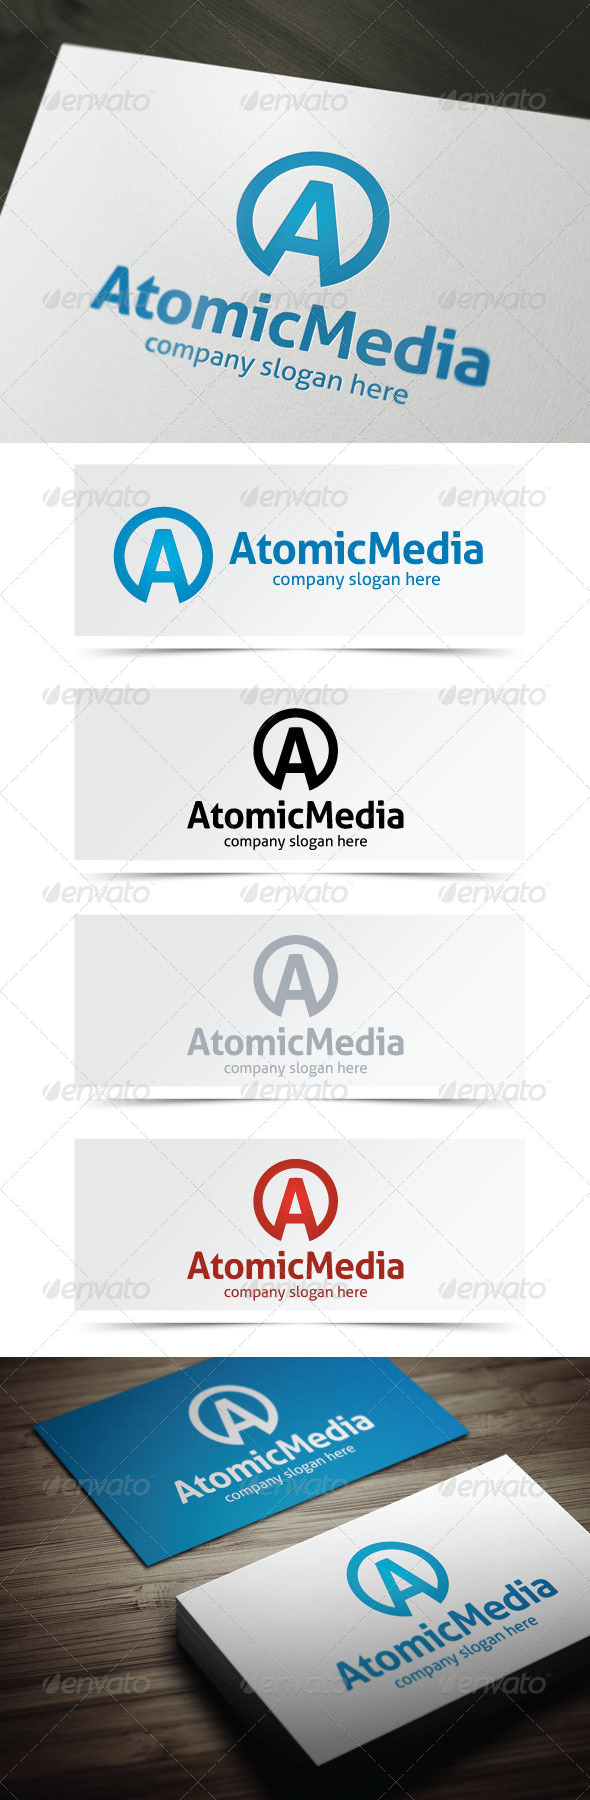 GraphicRiver Atomic Media 4978117